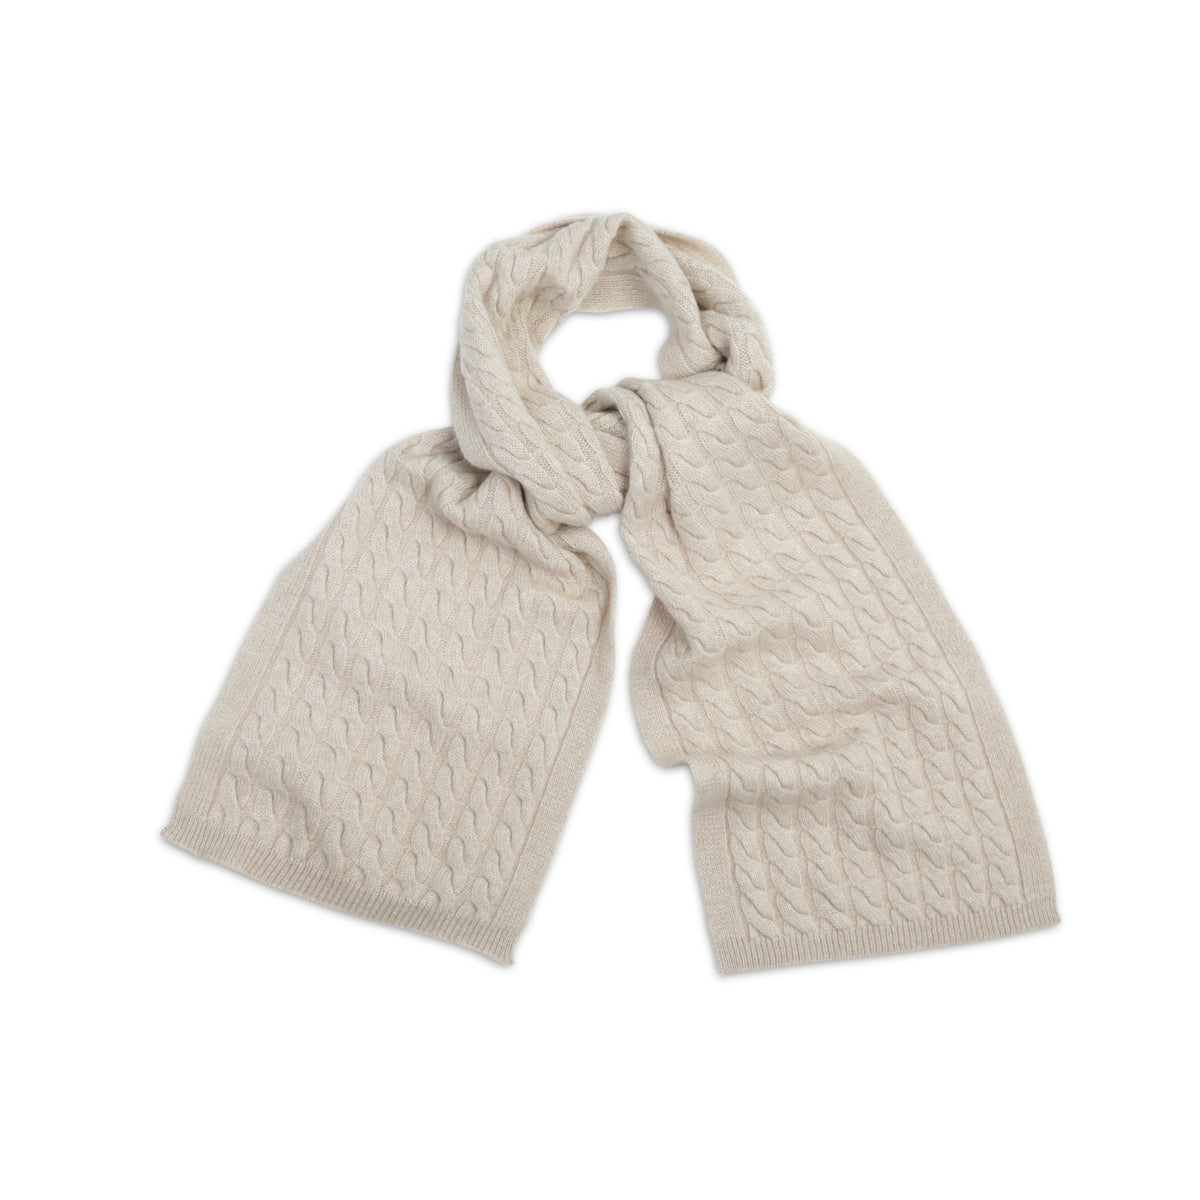 Organic Brown Beige Cable Knit | Pure Cashmere Scarf | shop now at The Cashmere Choice London